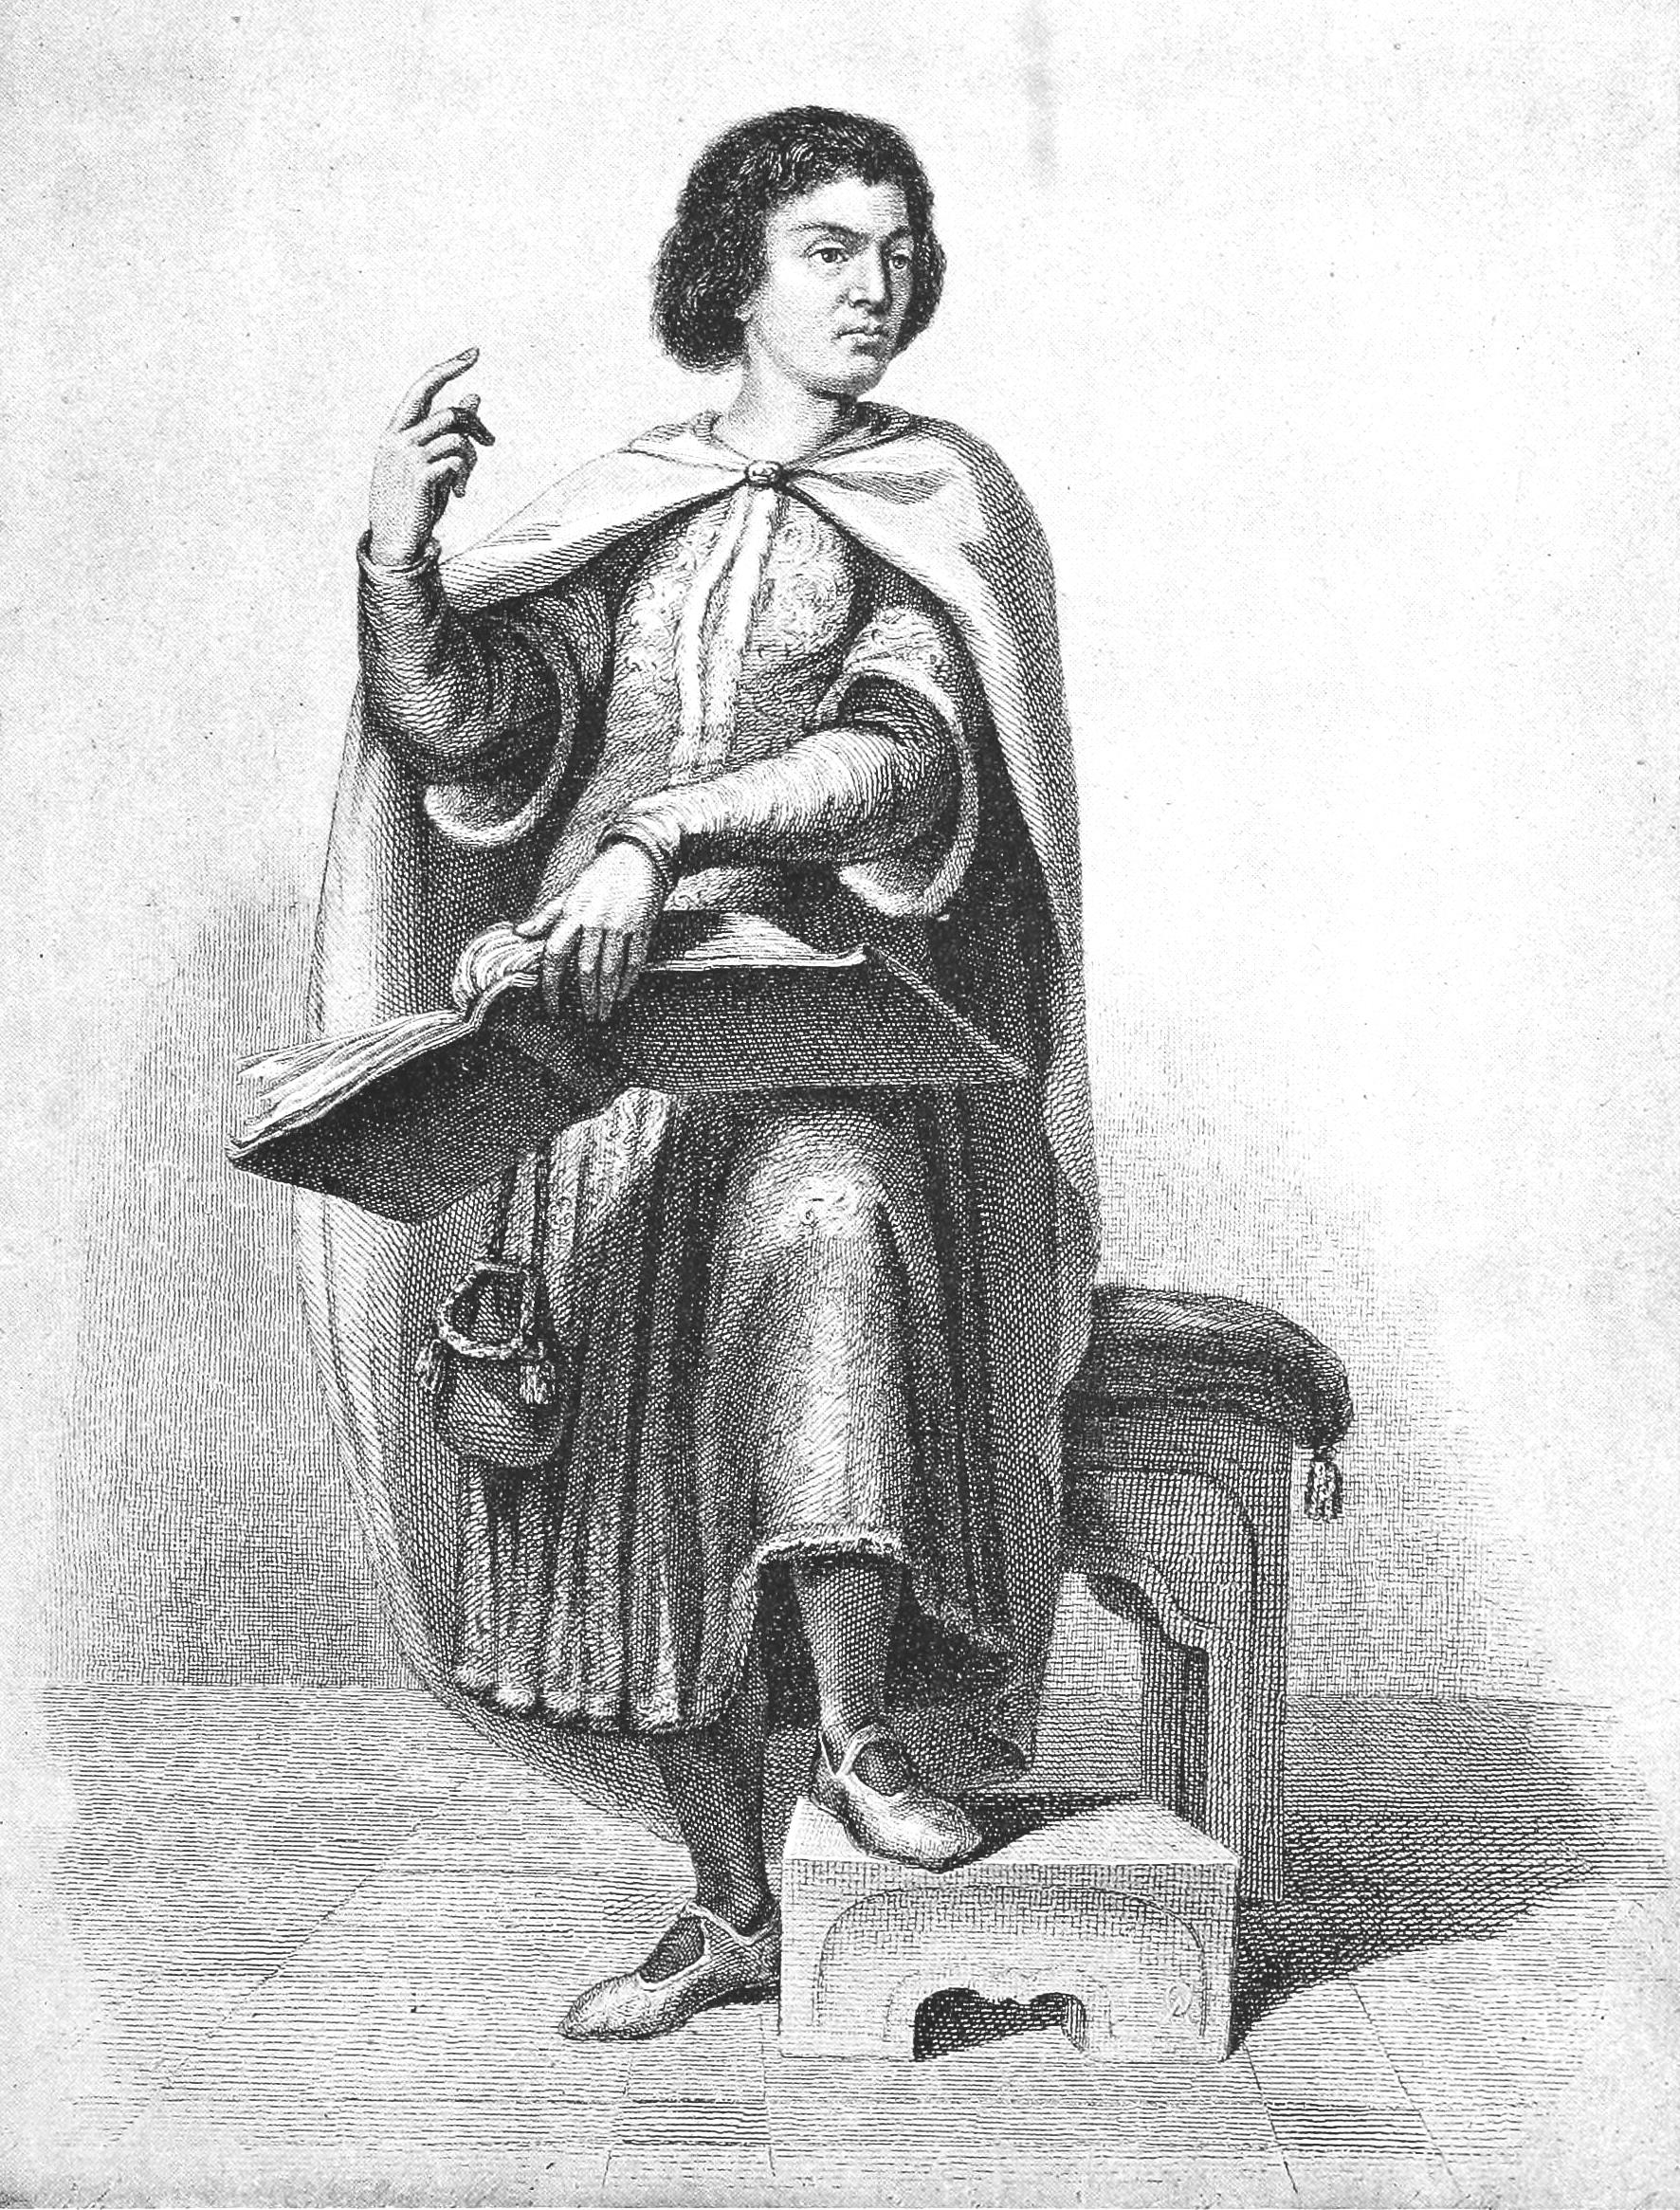 peter abelard Peter abelard was a brilliant and controversial french philosopher and theologian who is also well known for his ill-fated romance with héloïse.